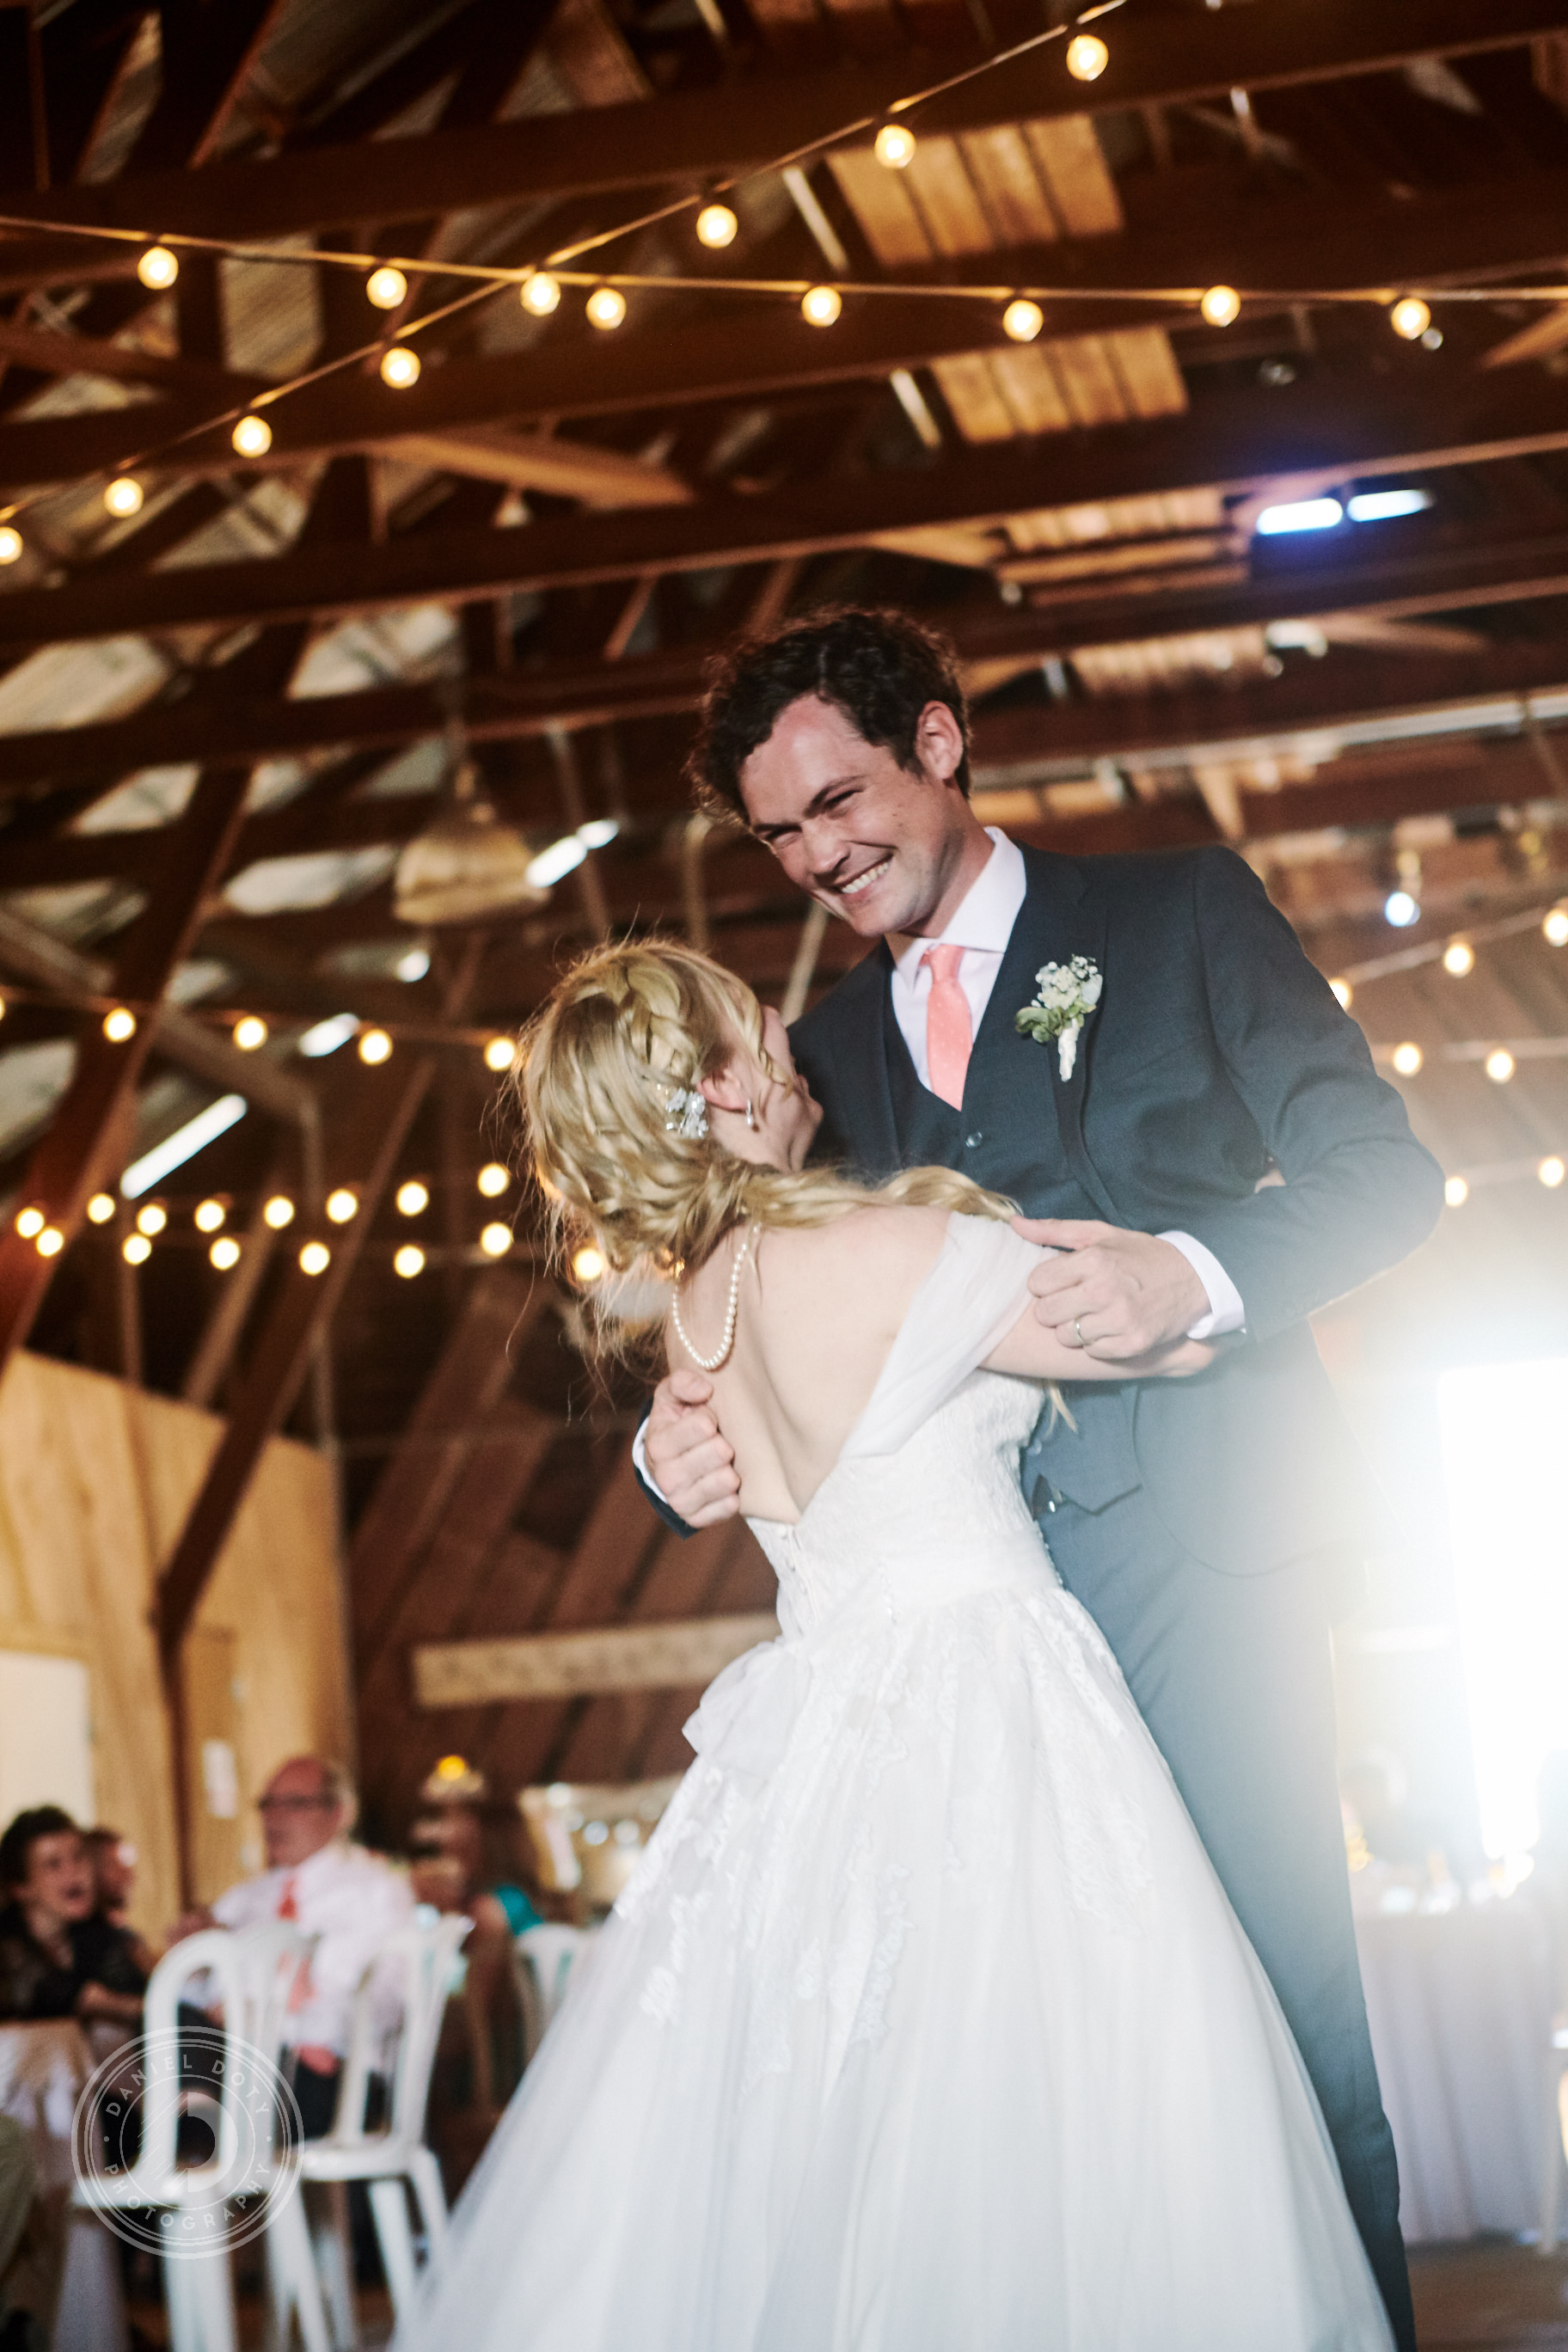 Daniel Doty Photography Erin Colin SoCal Wedding Photographer Strathearn 175.jpg